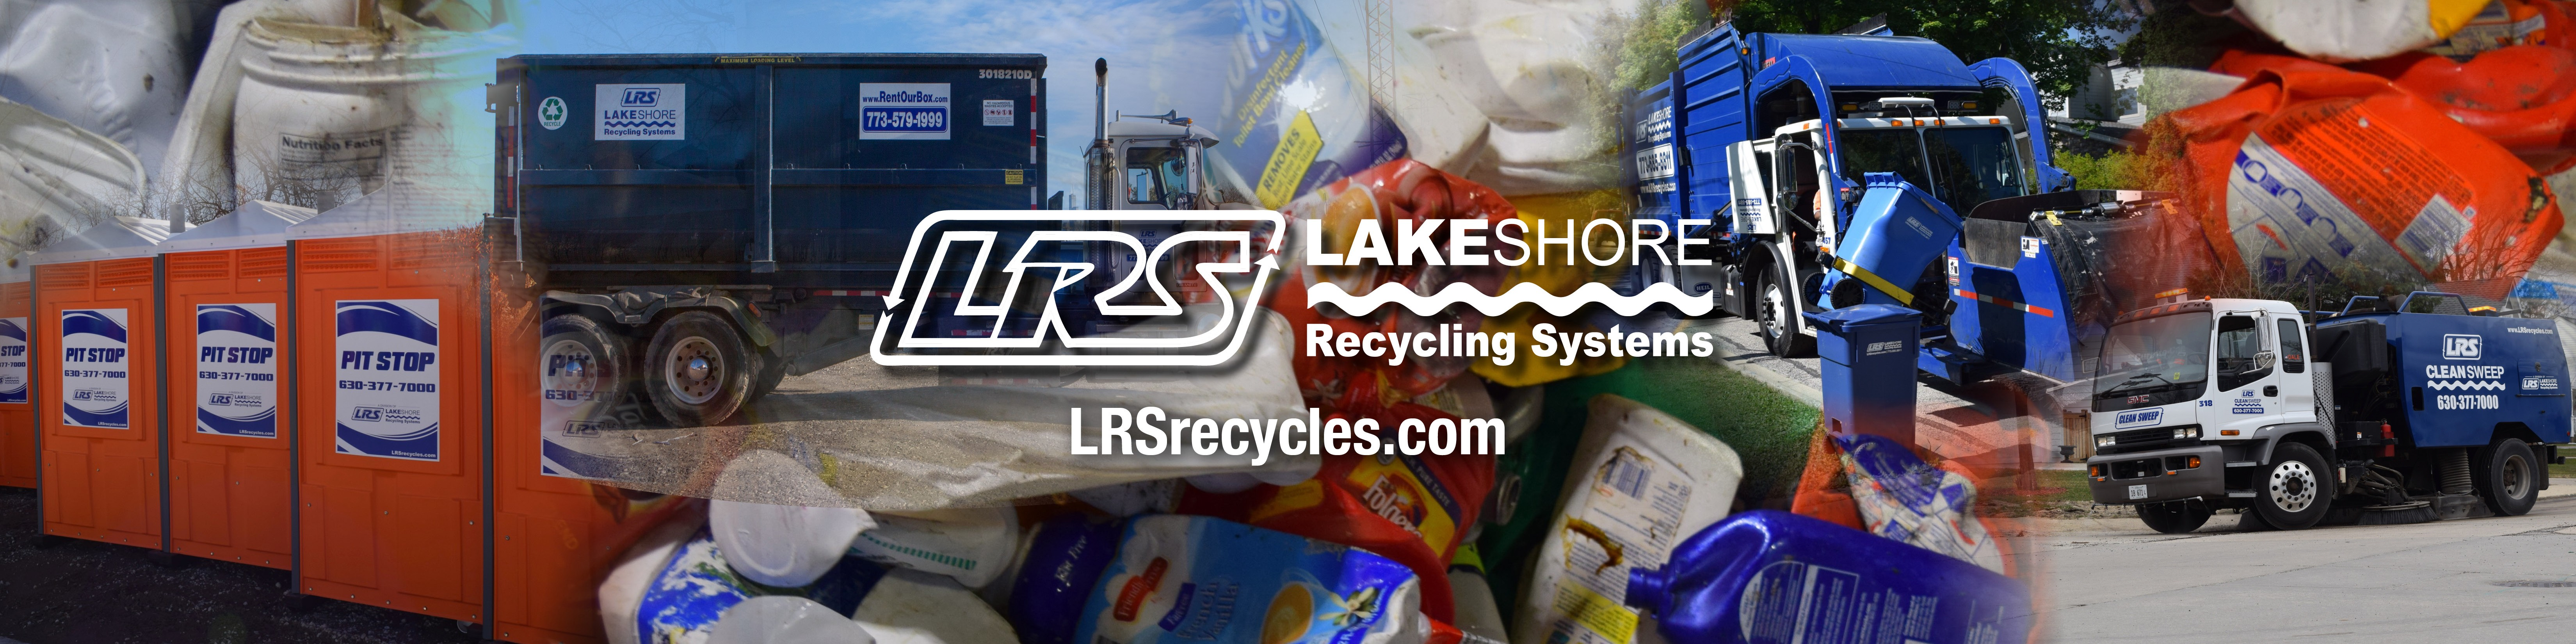 Lakeshore Recycling Systems | LinkedIn